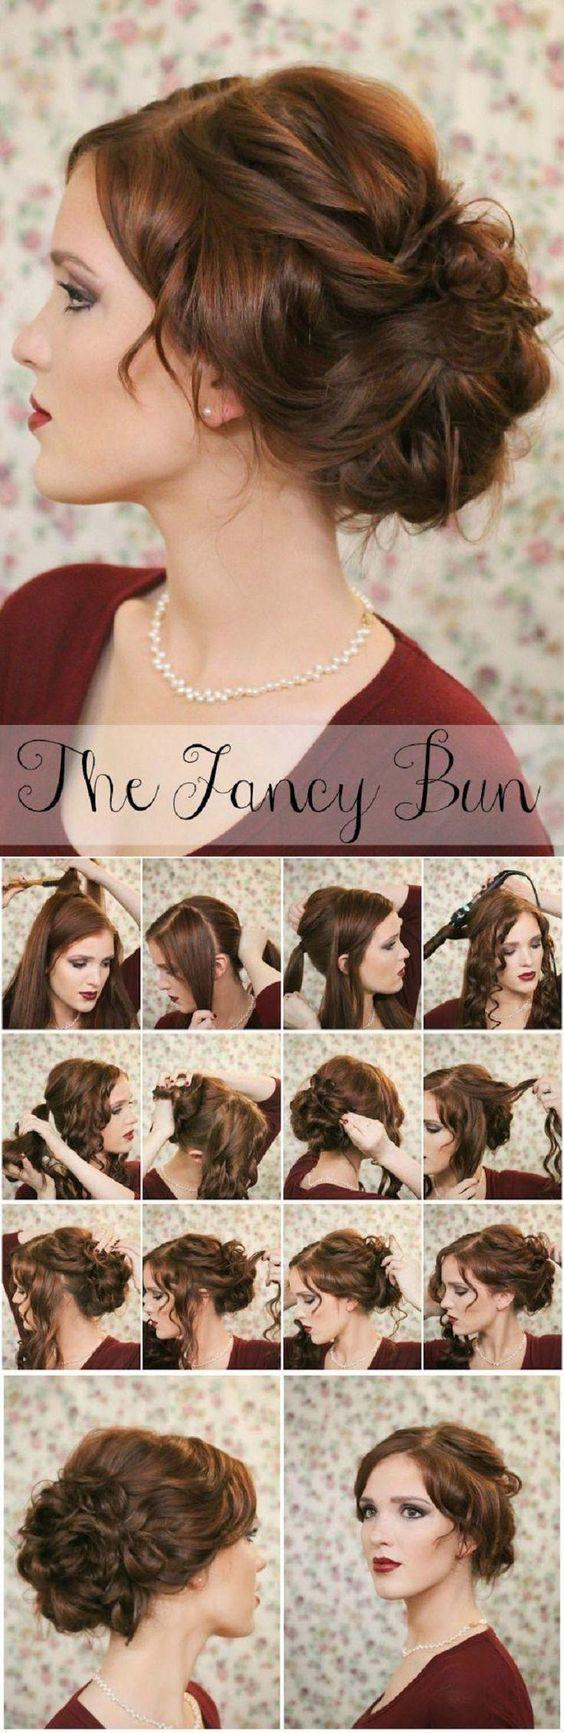 Diy Wedding Hairstyles Archives Oh Best Day Ever